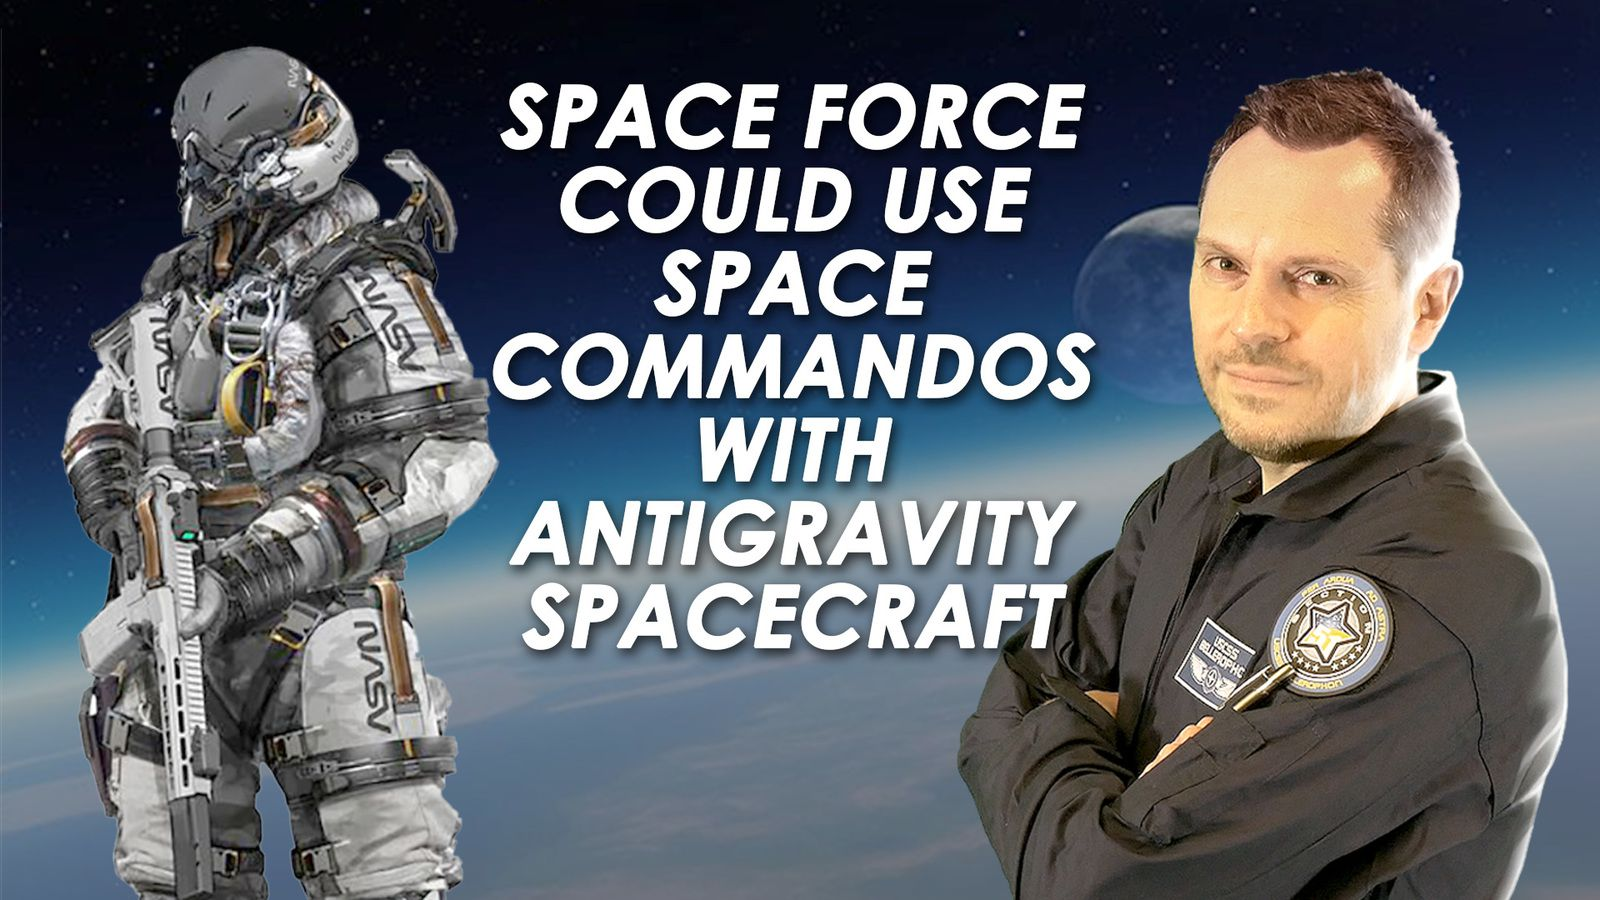 🚀 Space Force Could Use Space Commandos With Antigravity Spacecraft I 🔴 REPLAY LIVE